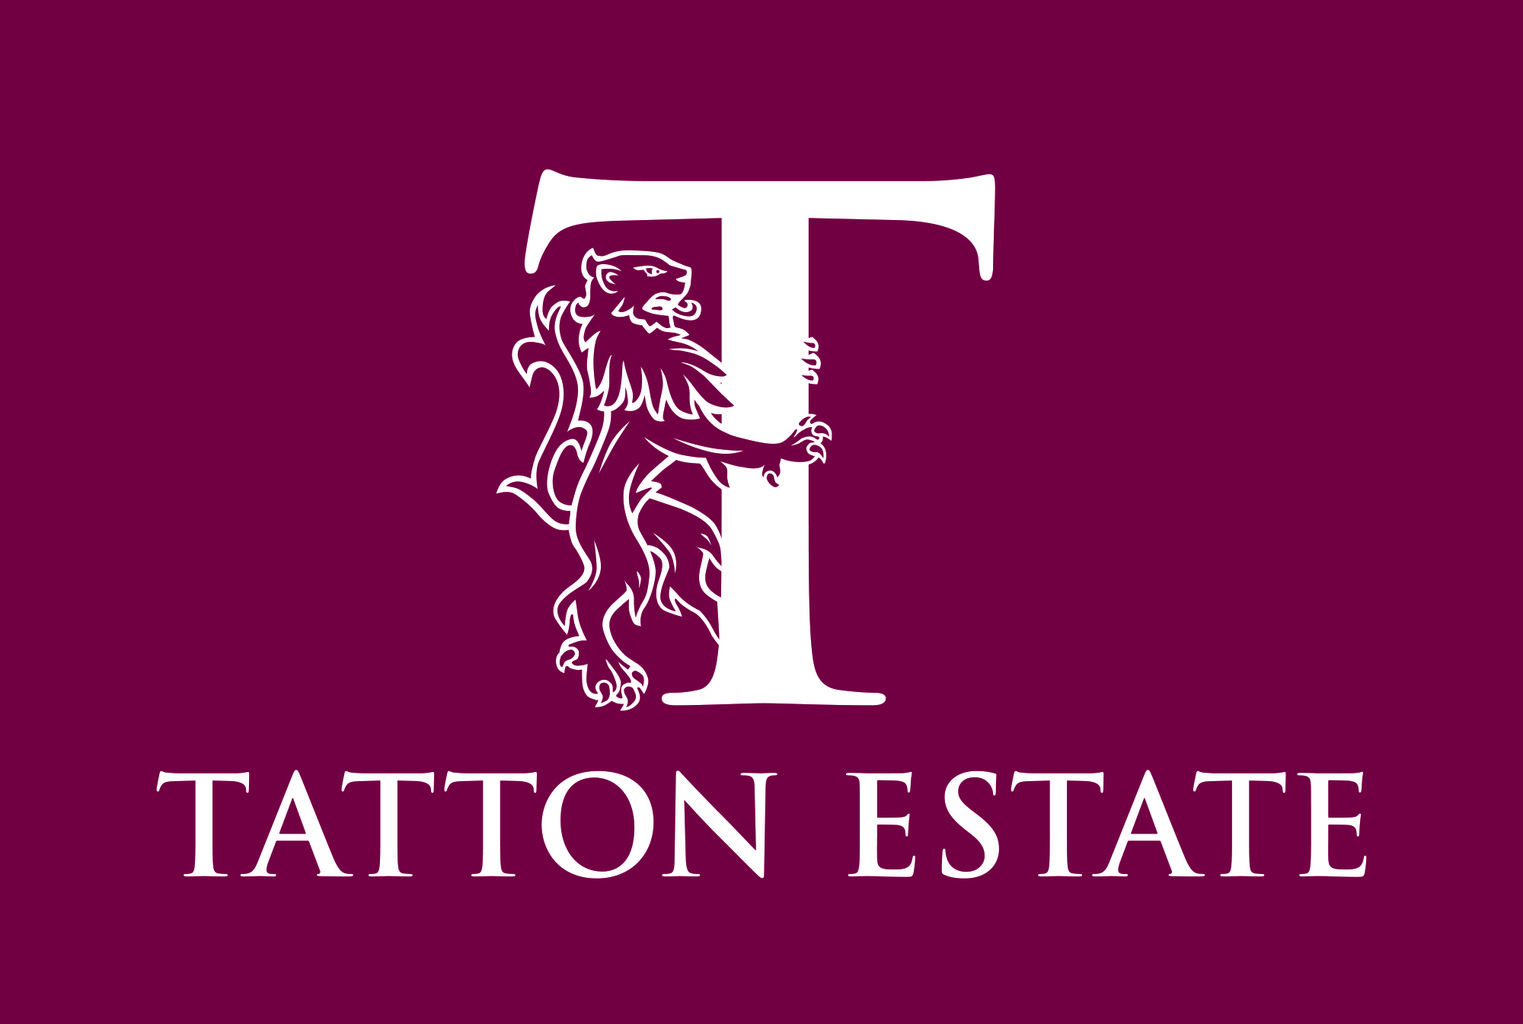 Tatton-Estate.jpg